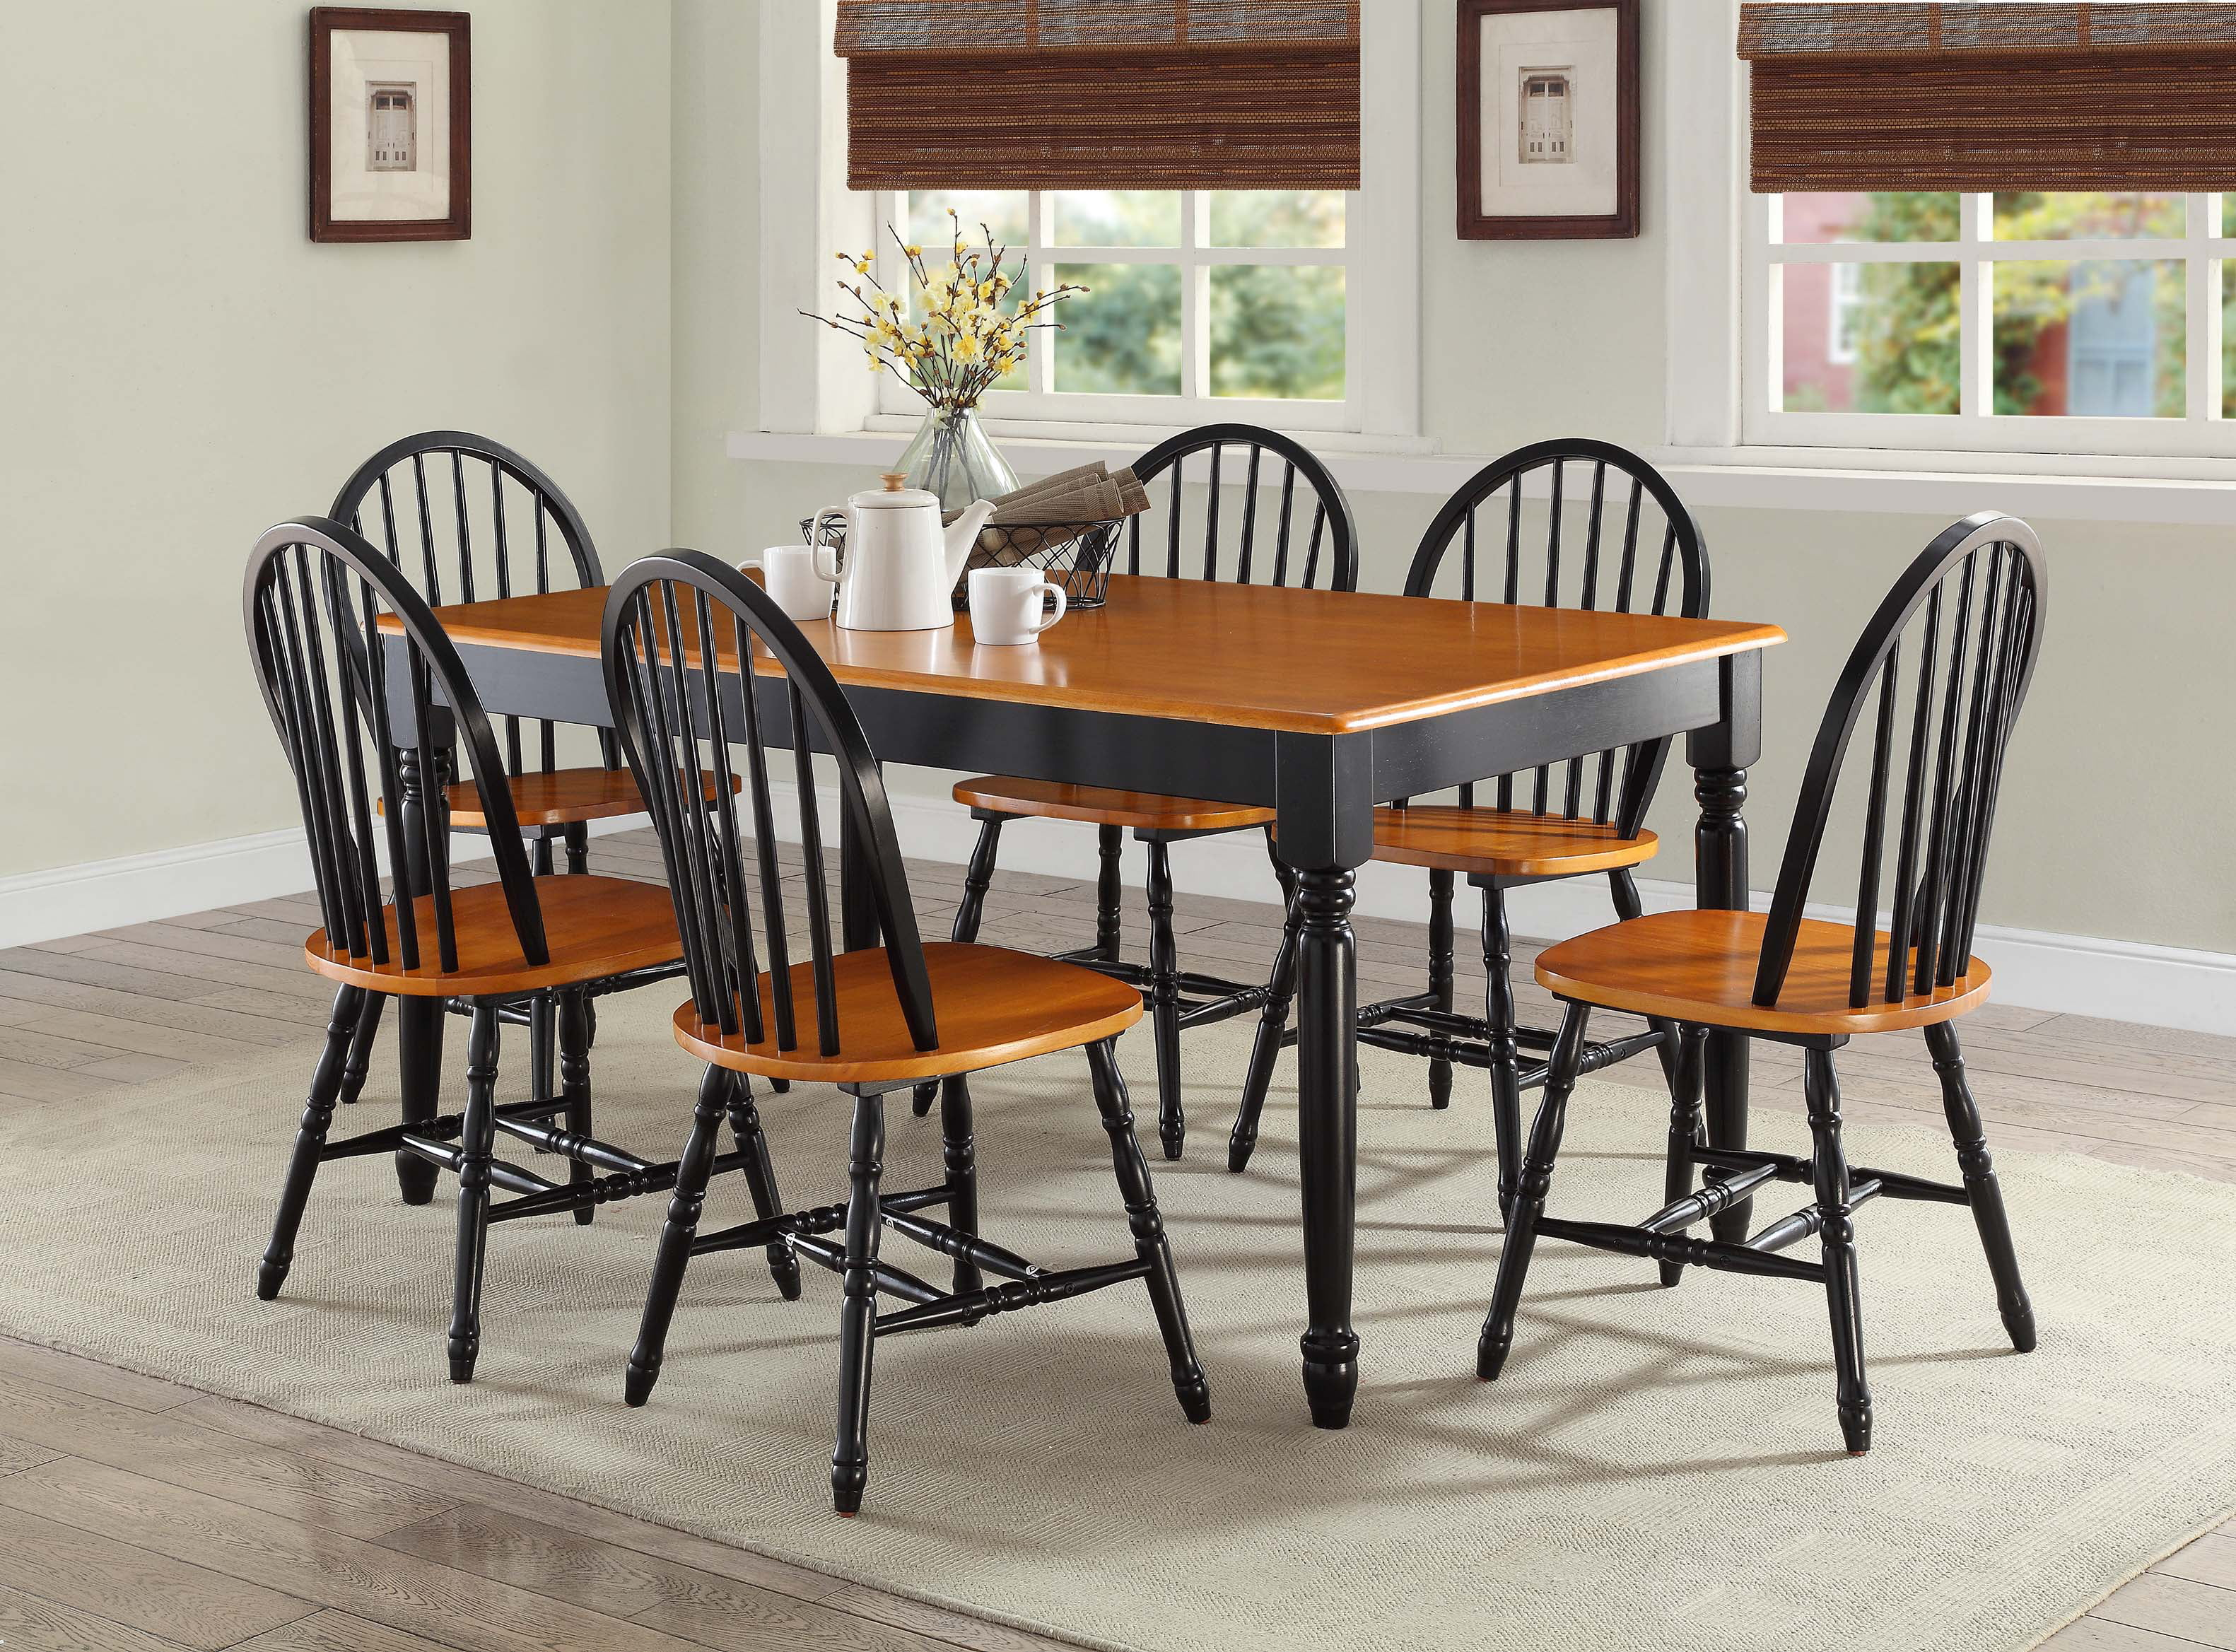 Kitchen Dining 6 Person Furniture Table Chairs Bench Room BlackOak Wood Indoor